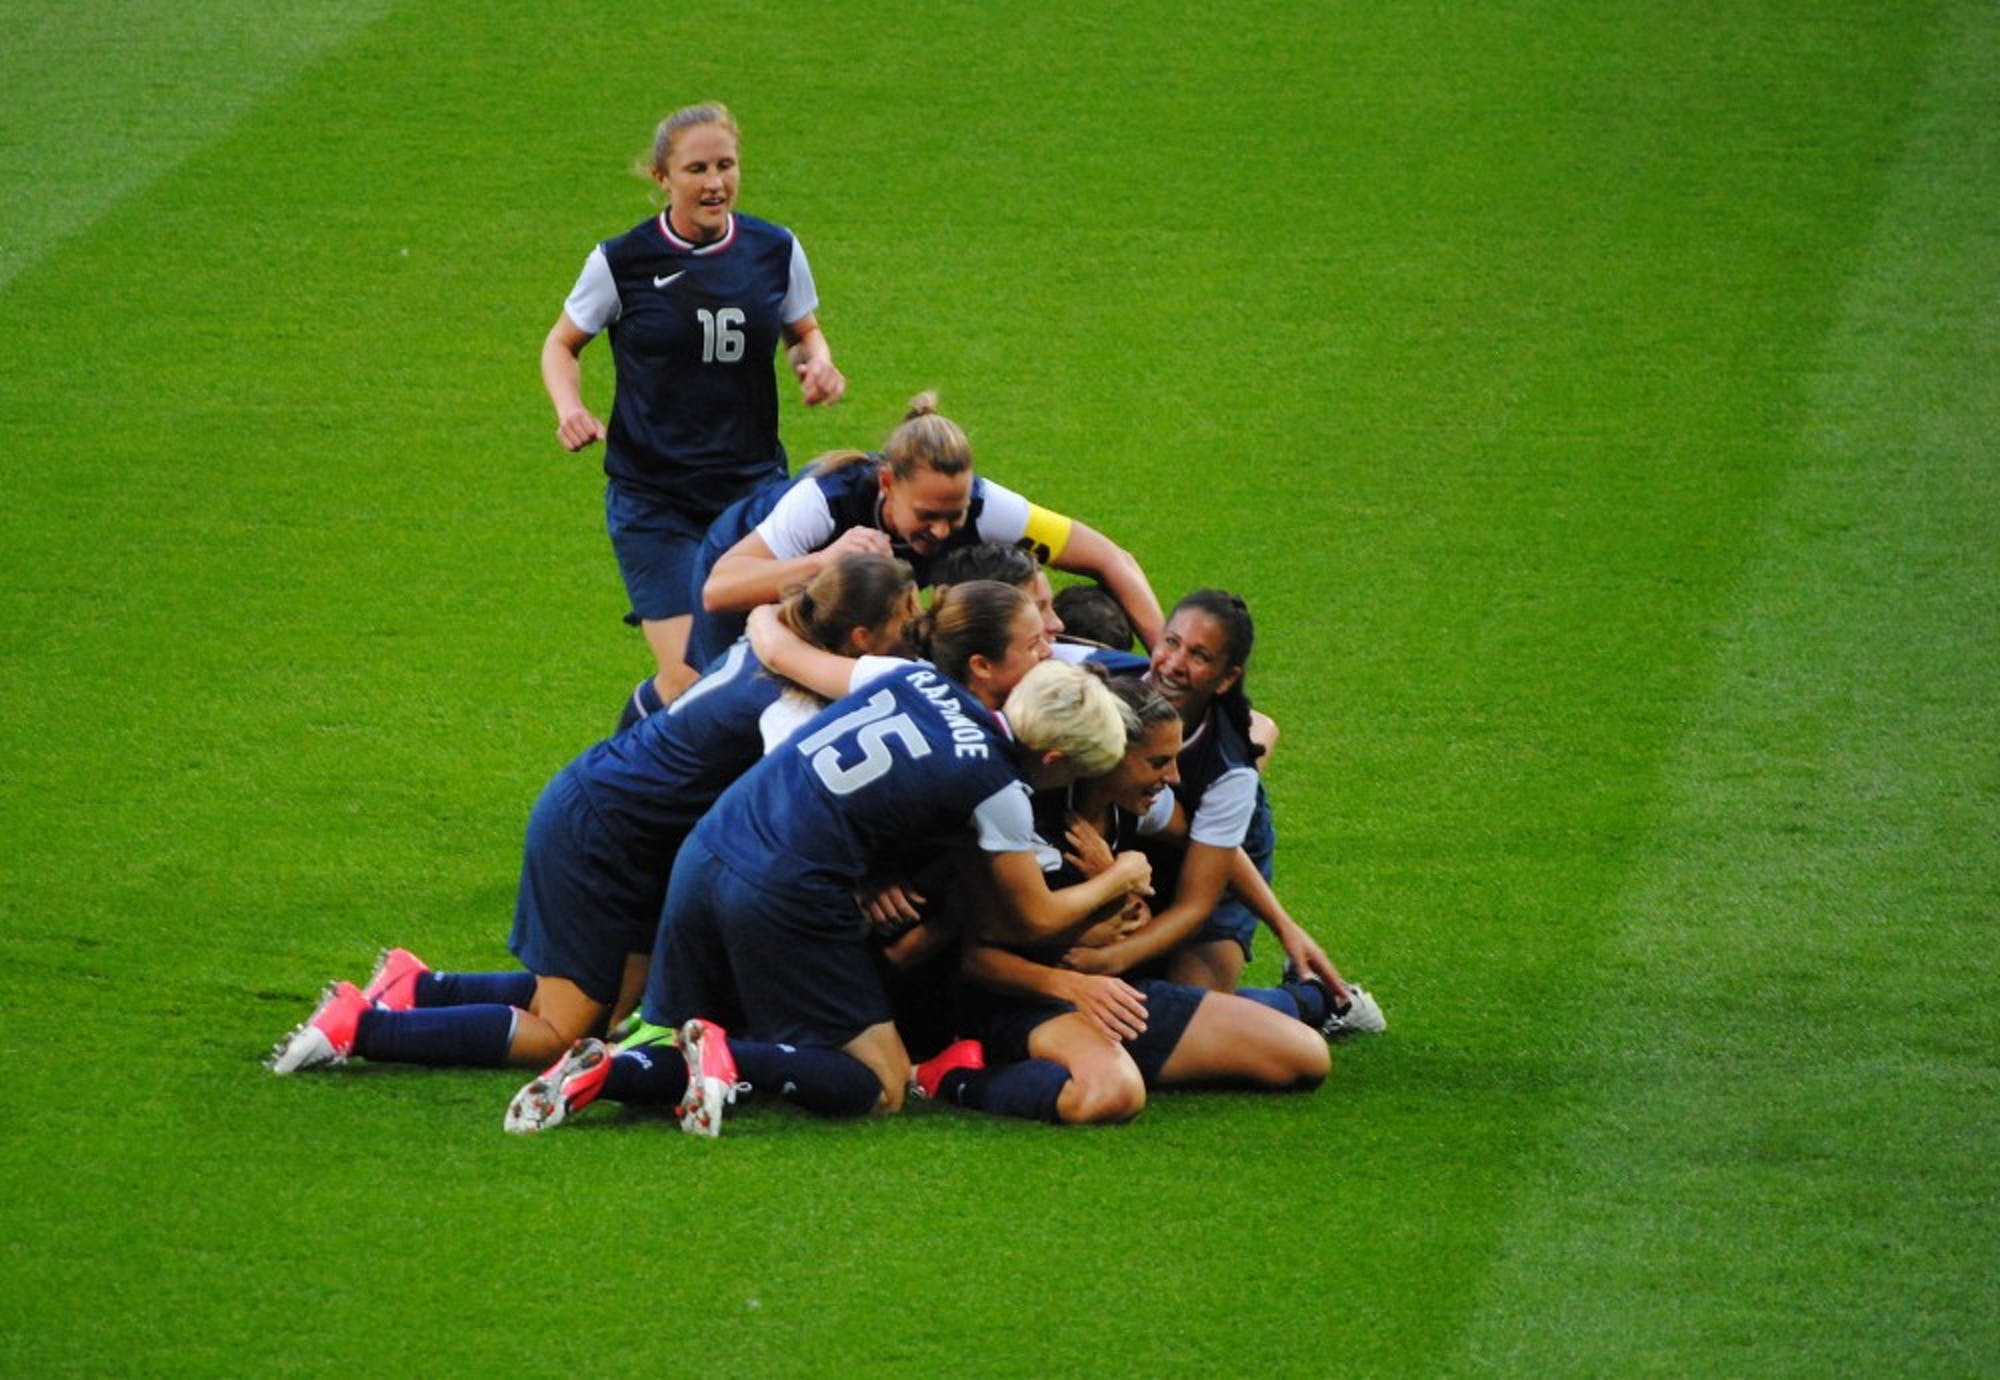 us-womens-soccer-team-pileon-vs-japan-olympic-gold-medal-match-august-9-2012-2